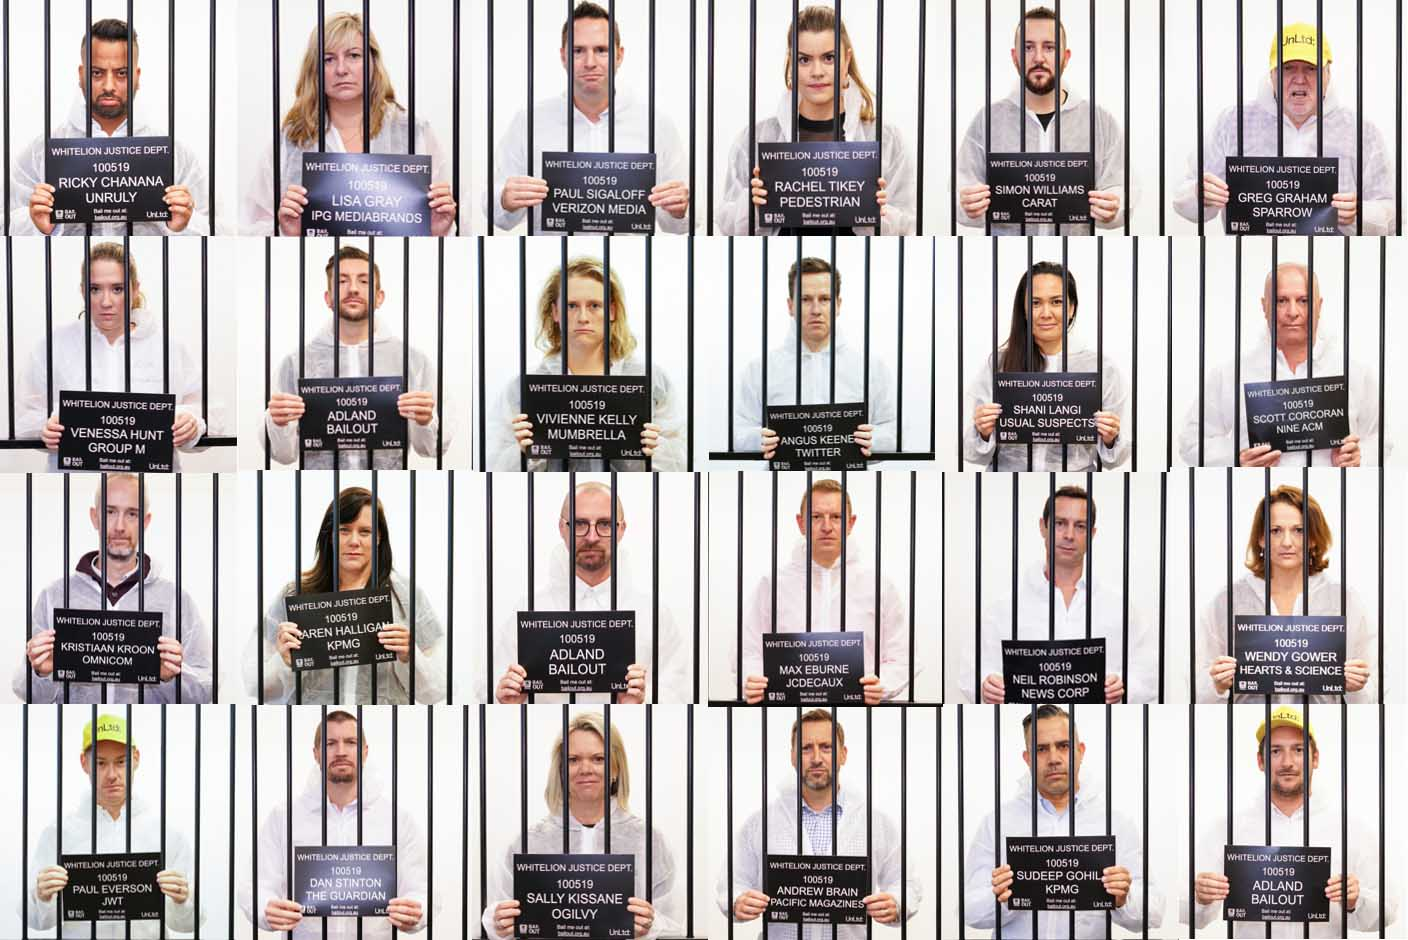 Adland behind bars: 150 industry leaders to be locked up in prison to help young people at risk